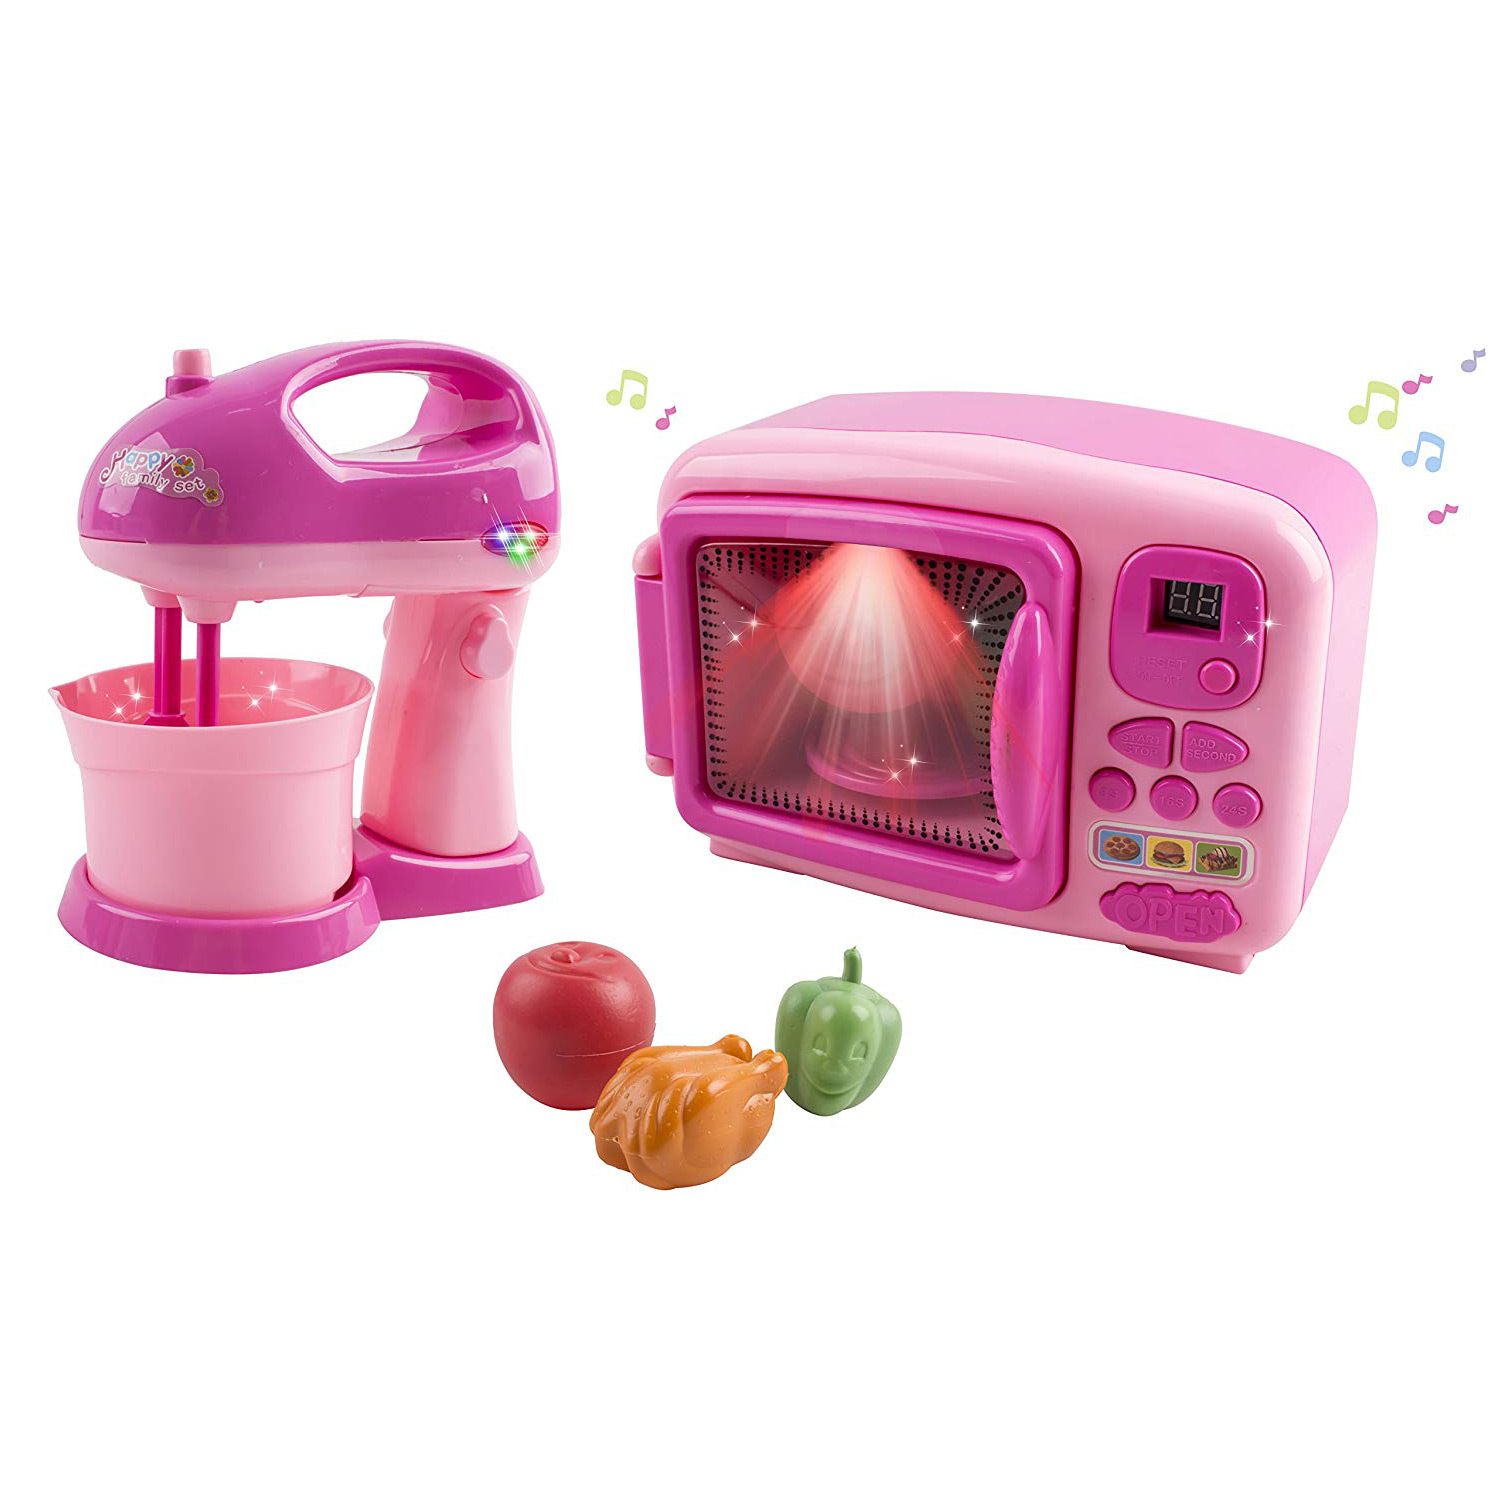 Toy Microwave and Mixing Blender Children\'s Kitchen Pretend Play Playset Battery Operated Appliance Set With Food Pieces Perfect For Early Learning Educational Preschool Girls Cooking Toys Pink